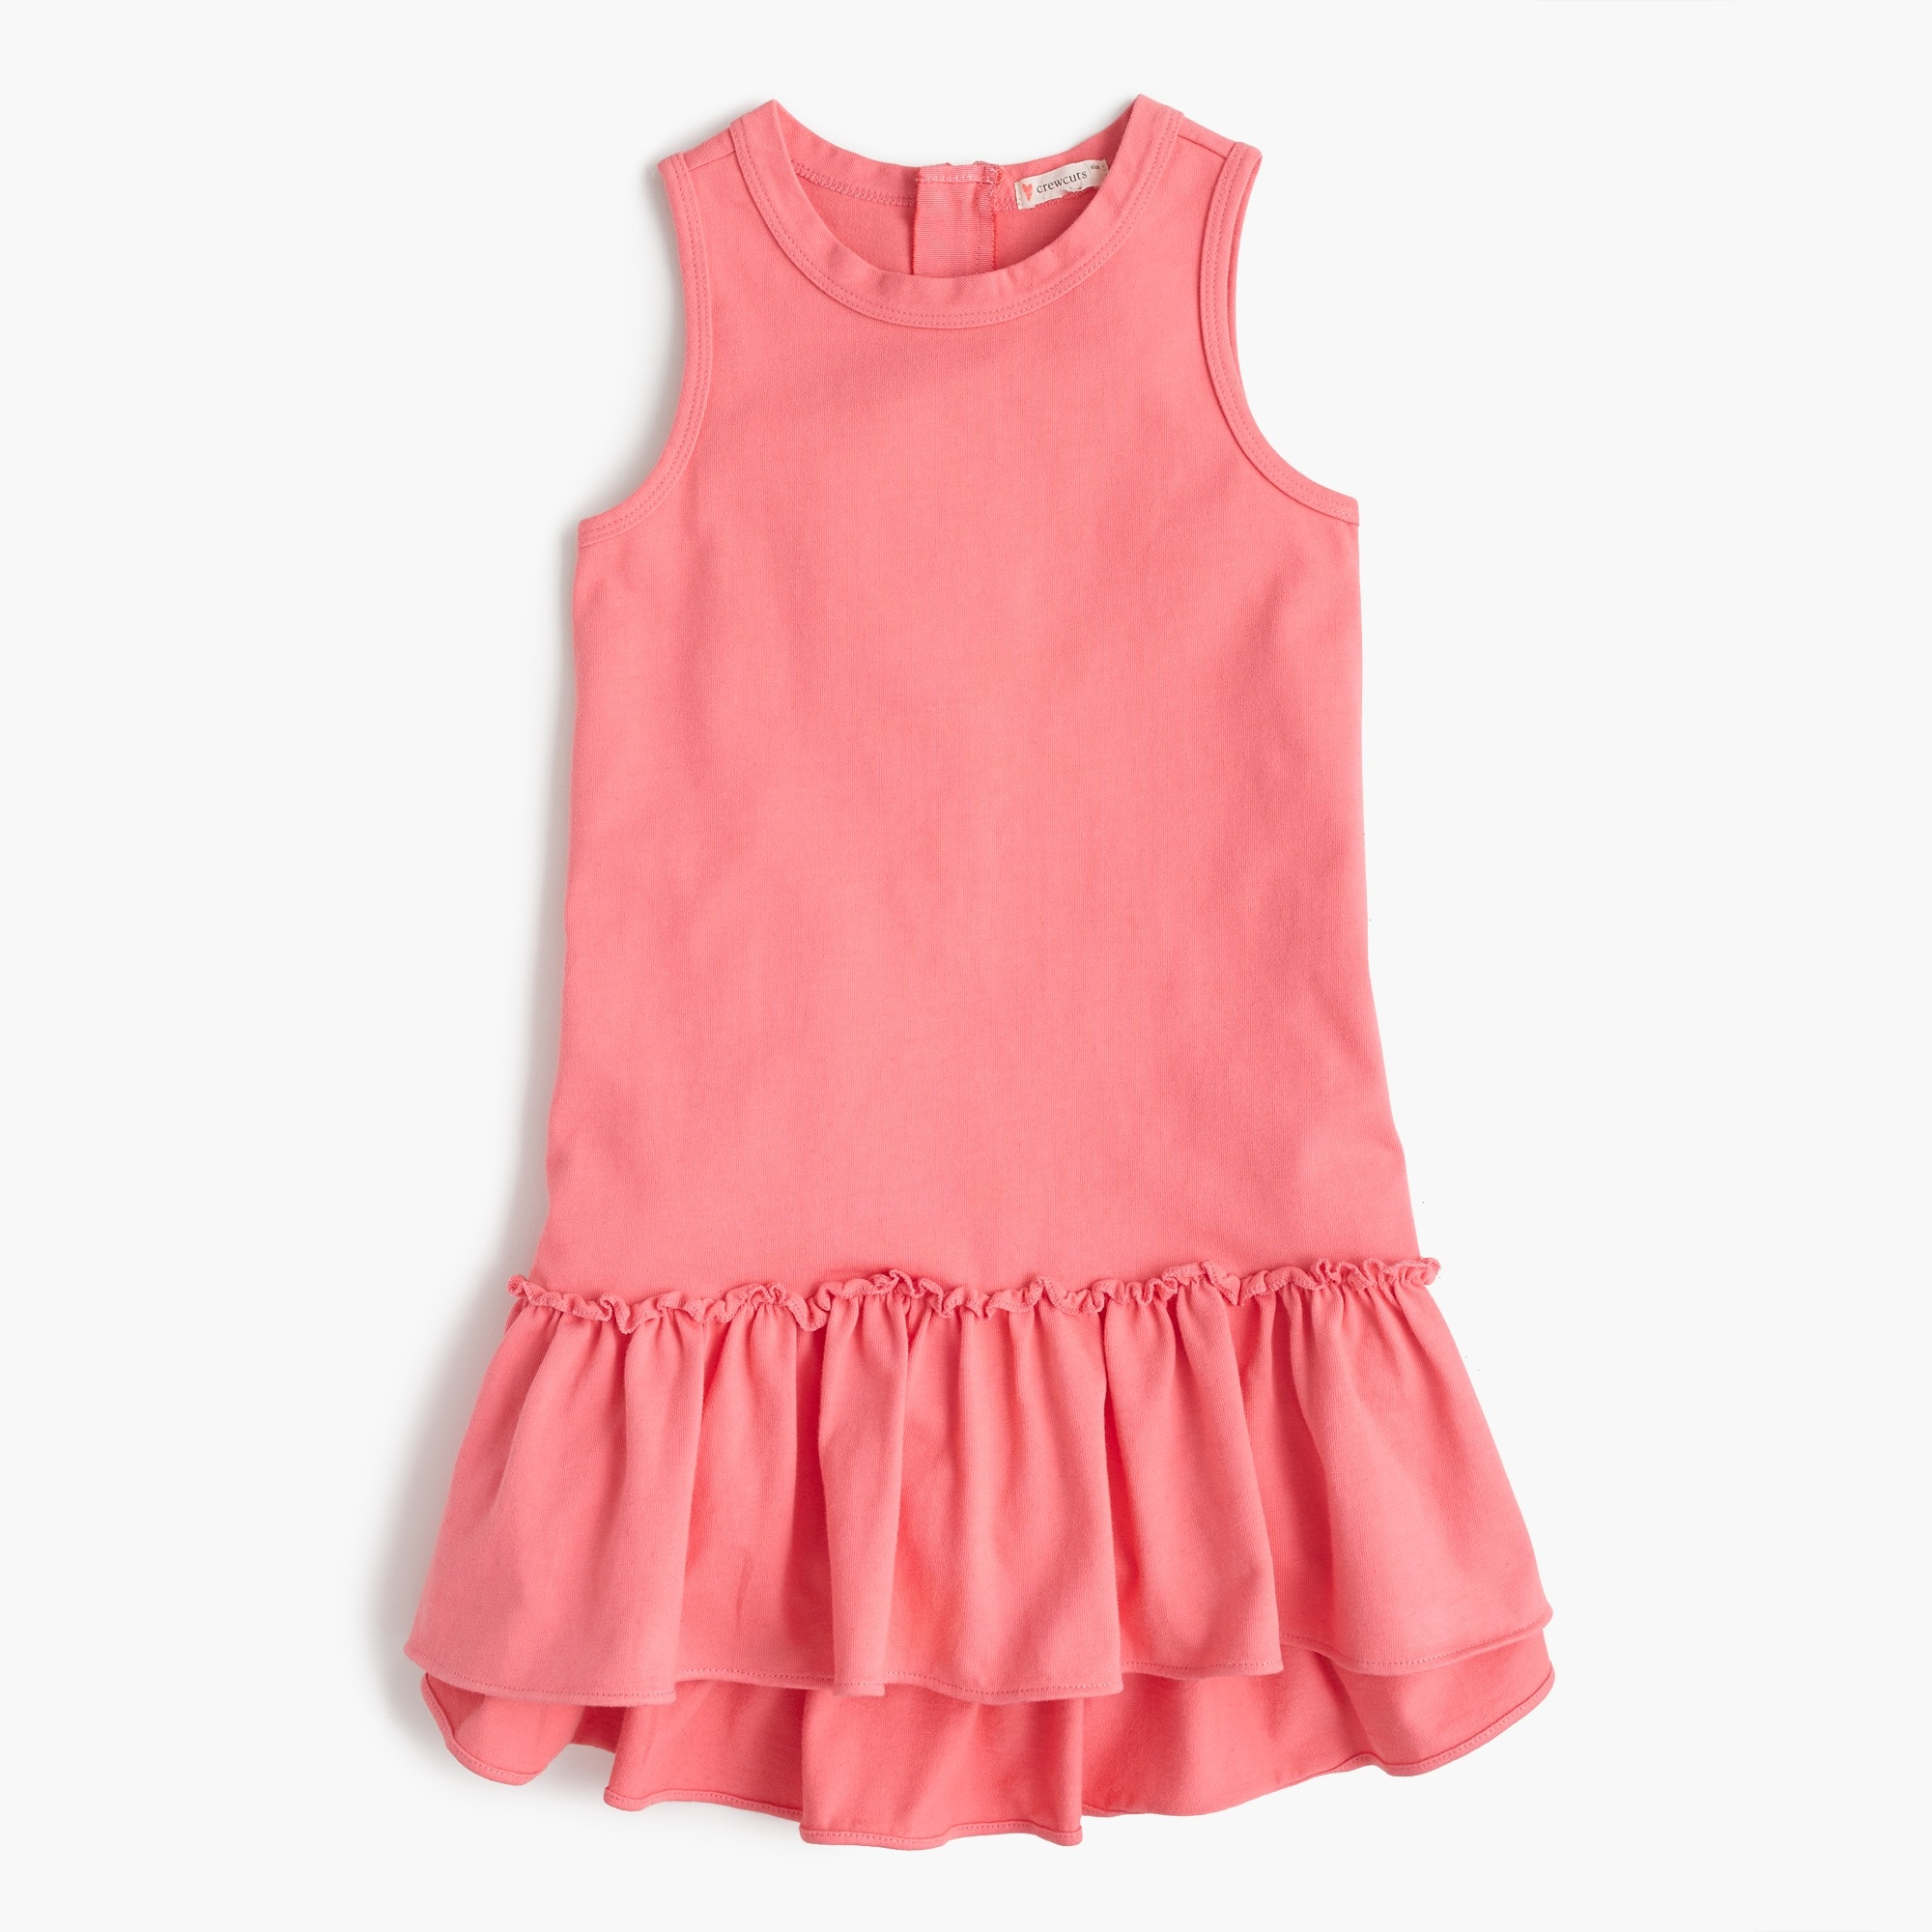 Girls' ruffle-hem dress girl dresses & jumpsuits c